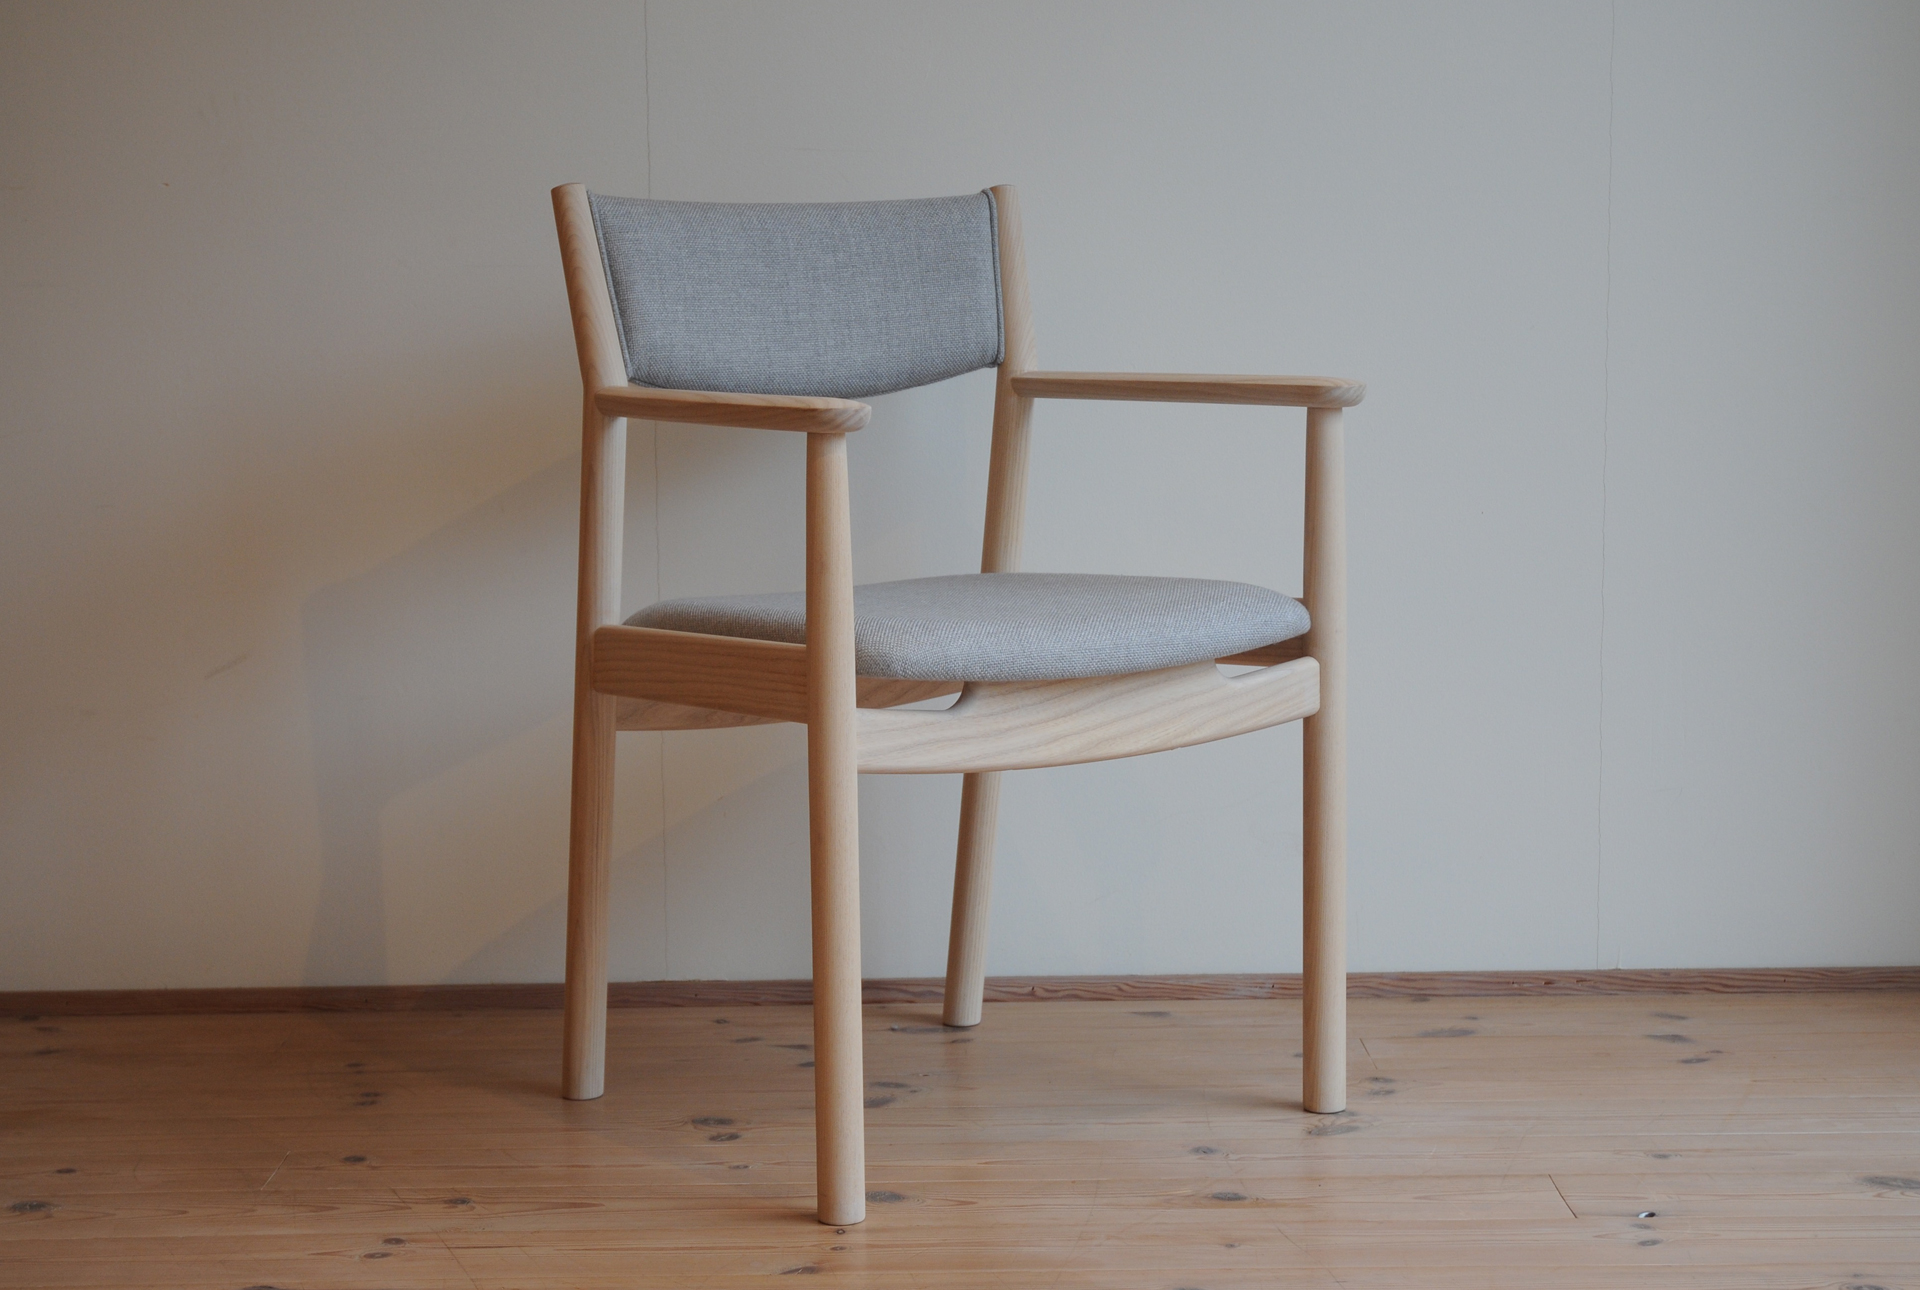 Superbe Japanese Chair 01 · C0113 Armchair01 ...